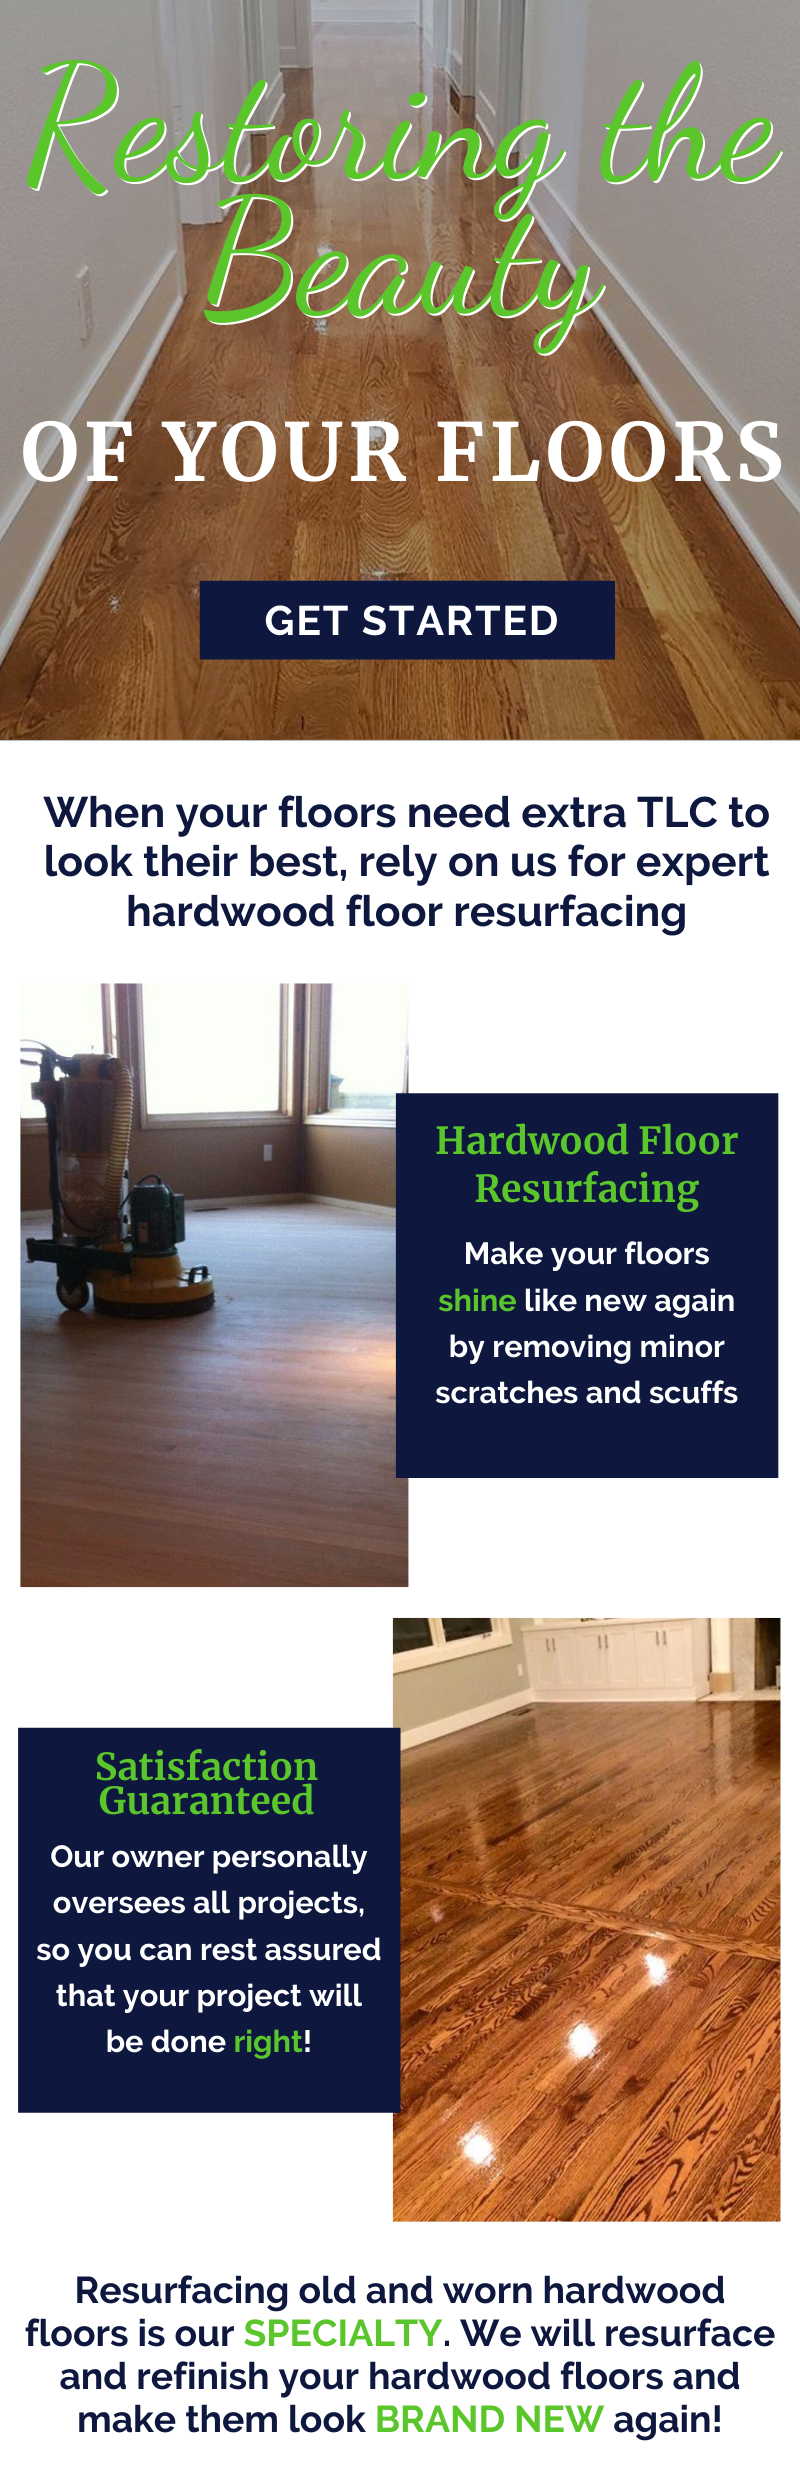 Restoring The Beauty Of Your Floors! 5